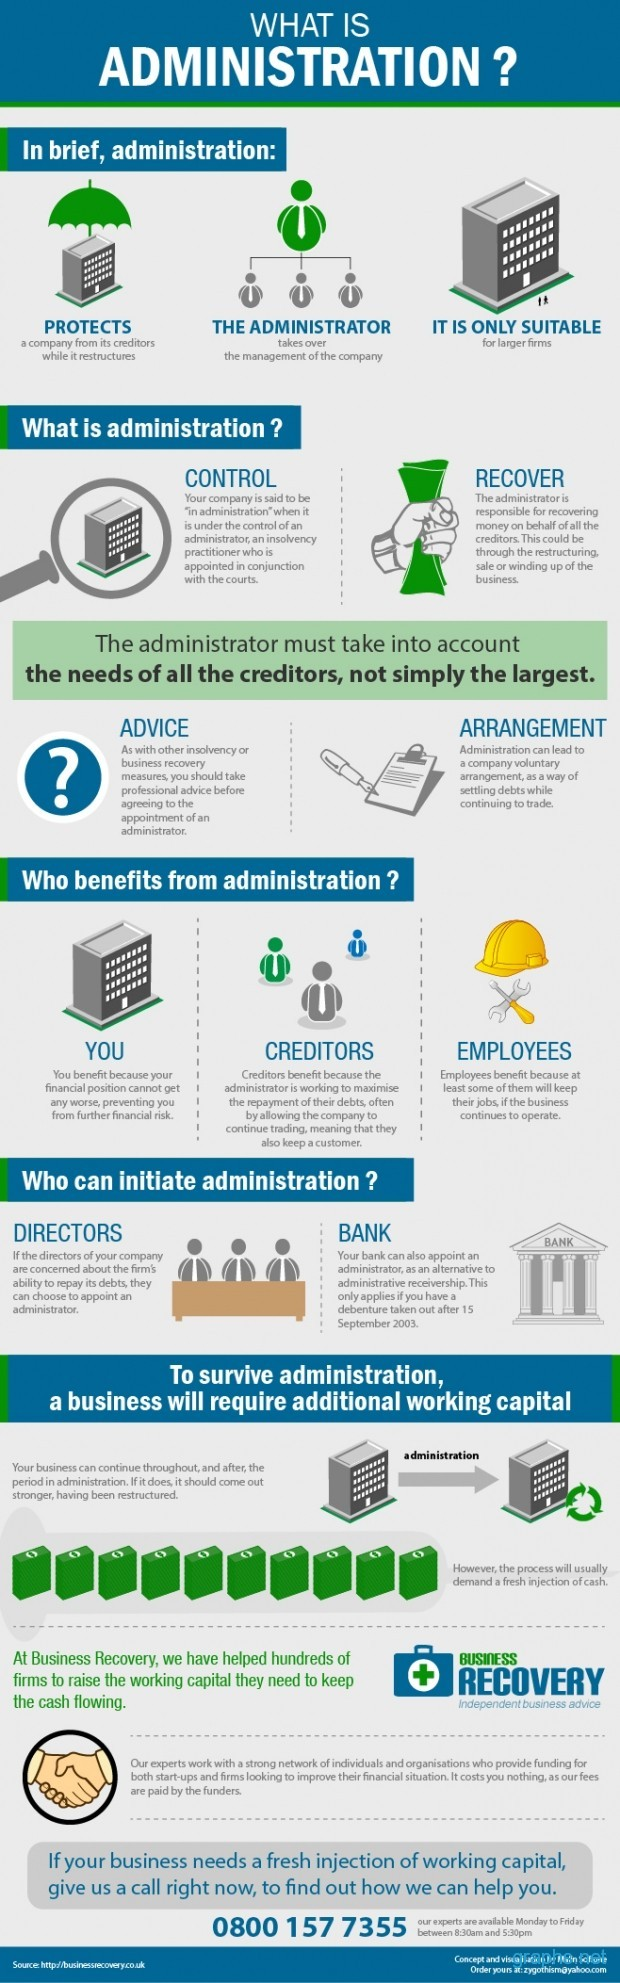 Administration of a Business